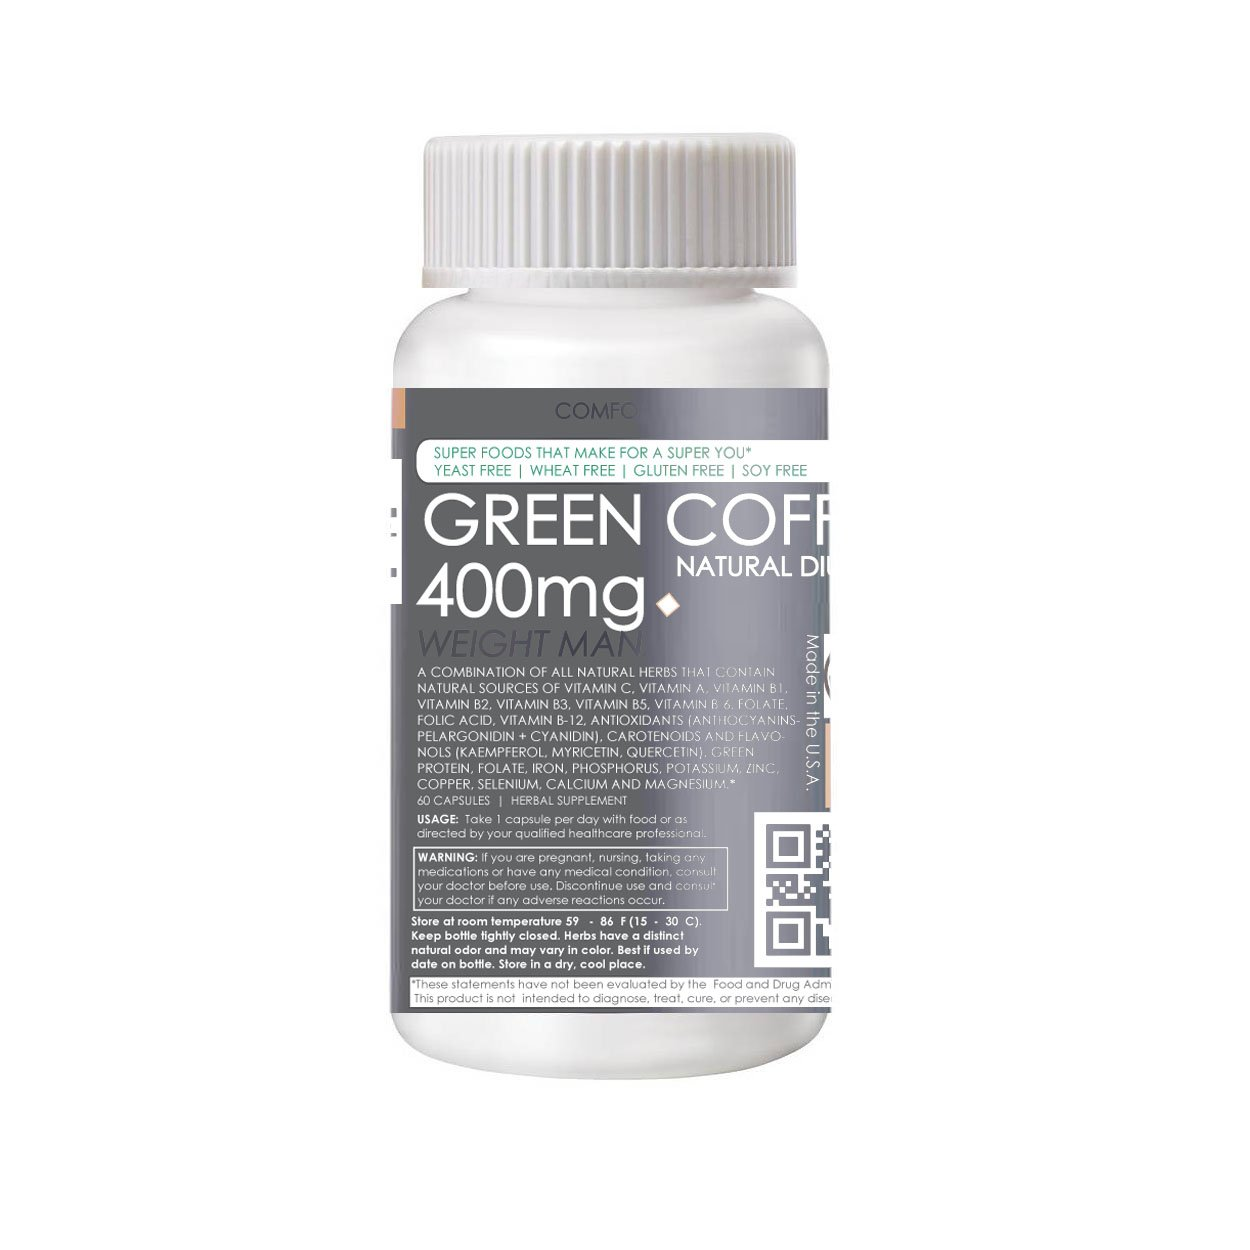 Green Coffee Diuretic Supplements (Water Weight Reduction) GMO-FREE